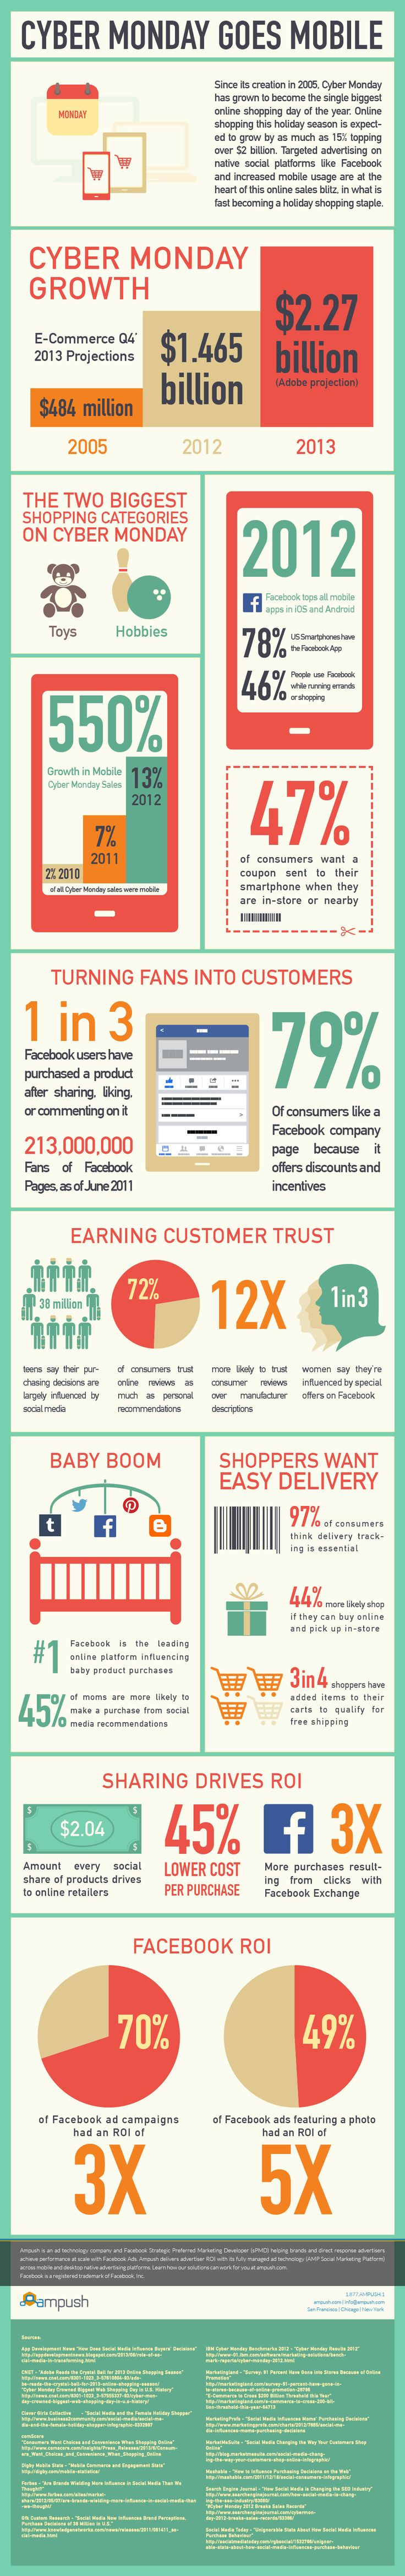 How Cyber Monday has become a great #mobile event  #CyberMonday #infographic